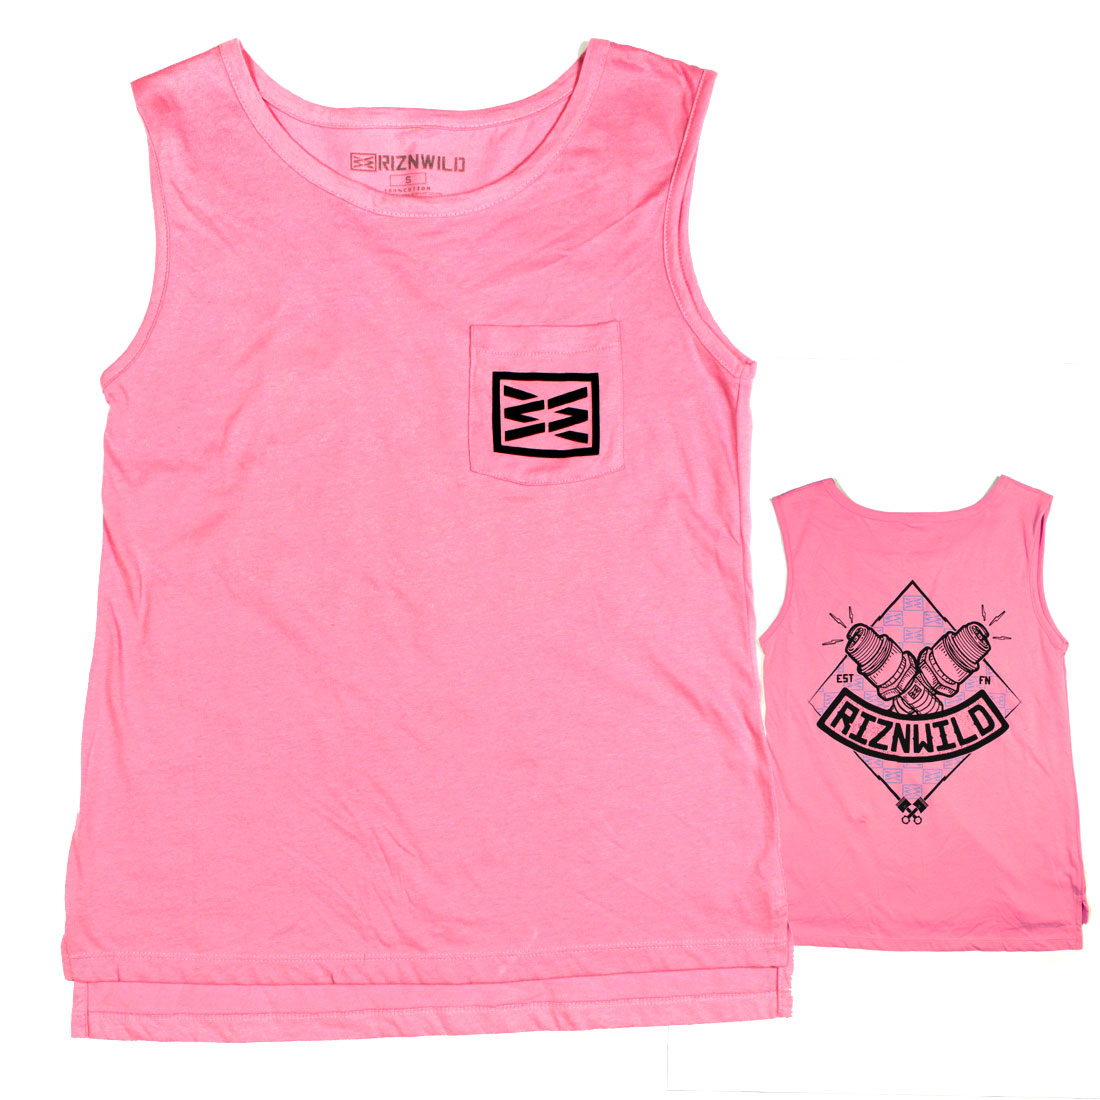 Combust Girls Muscle Pocket Tank in Pink